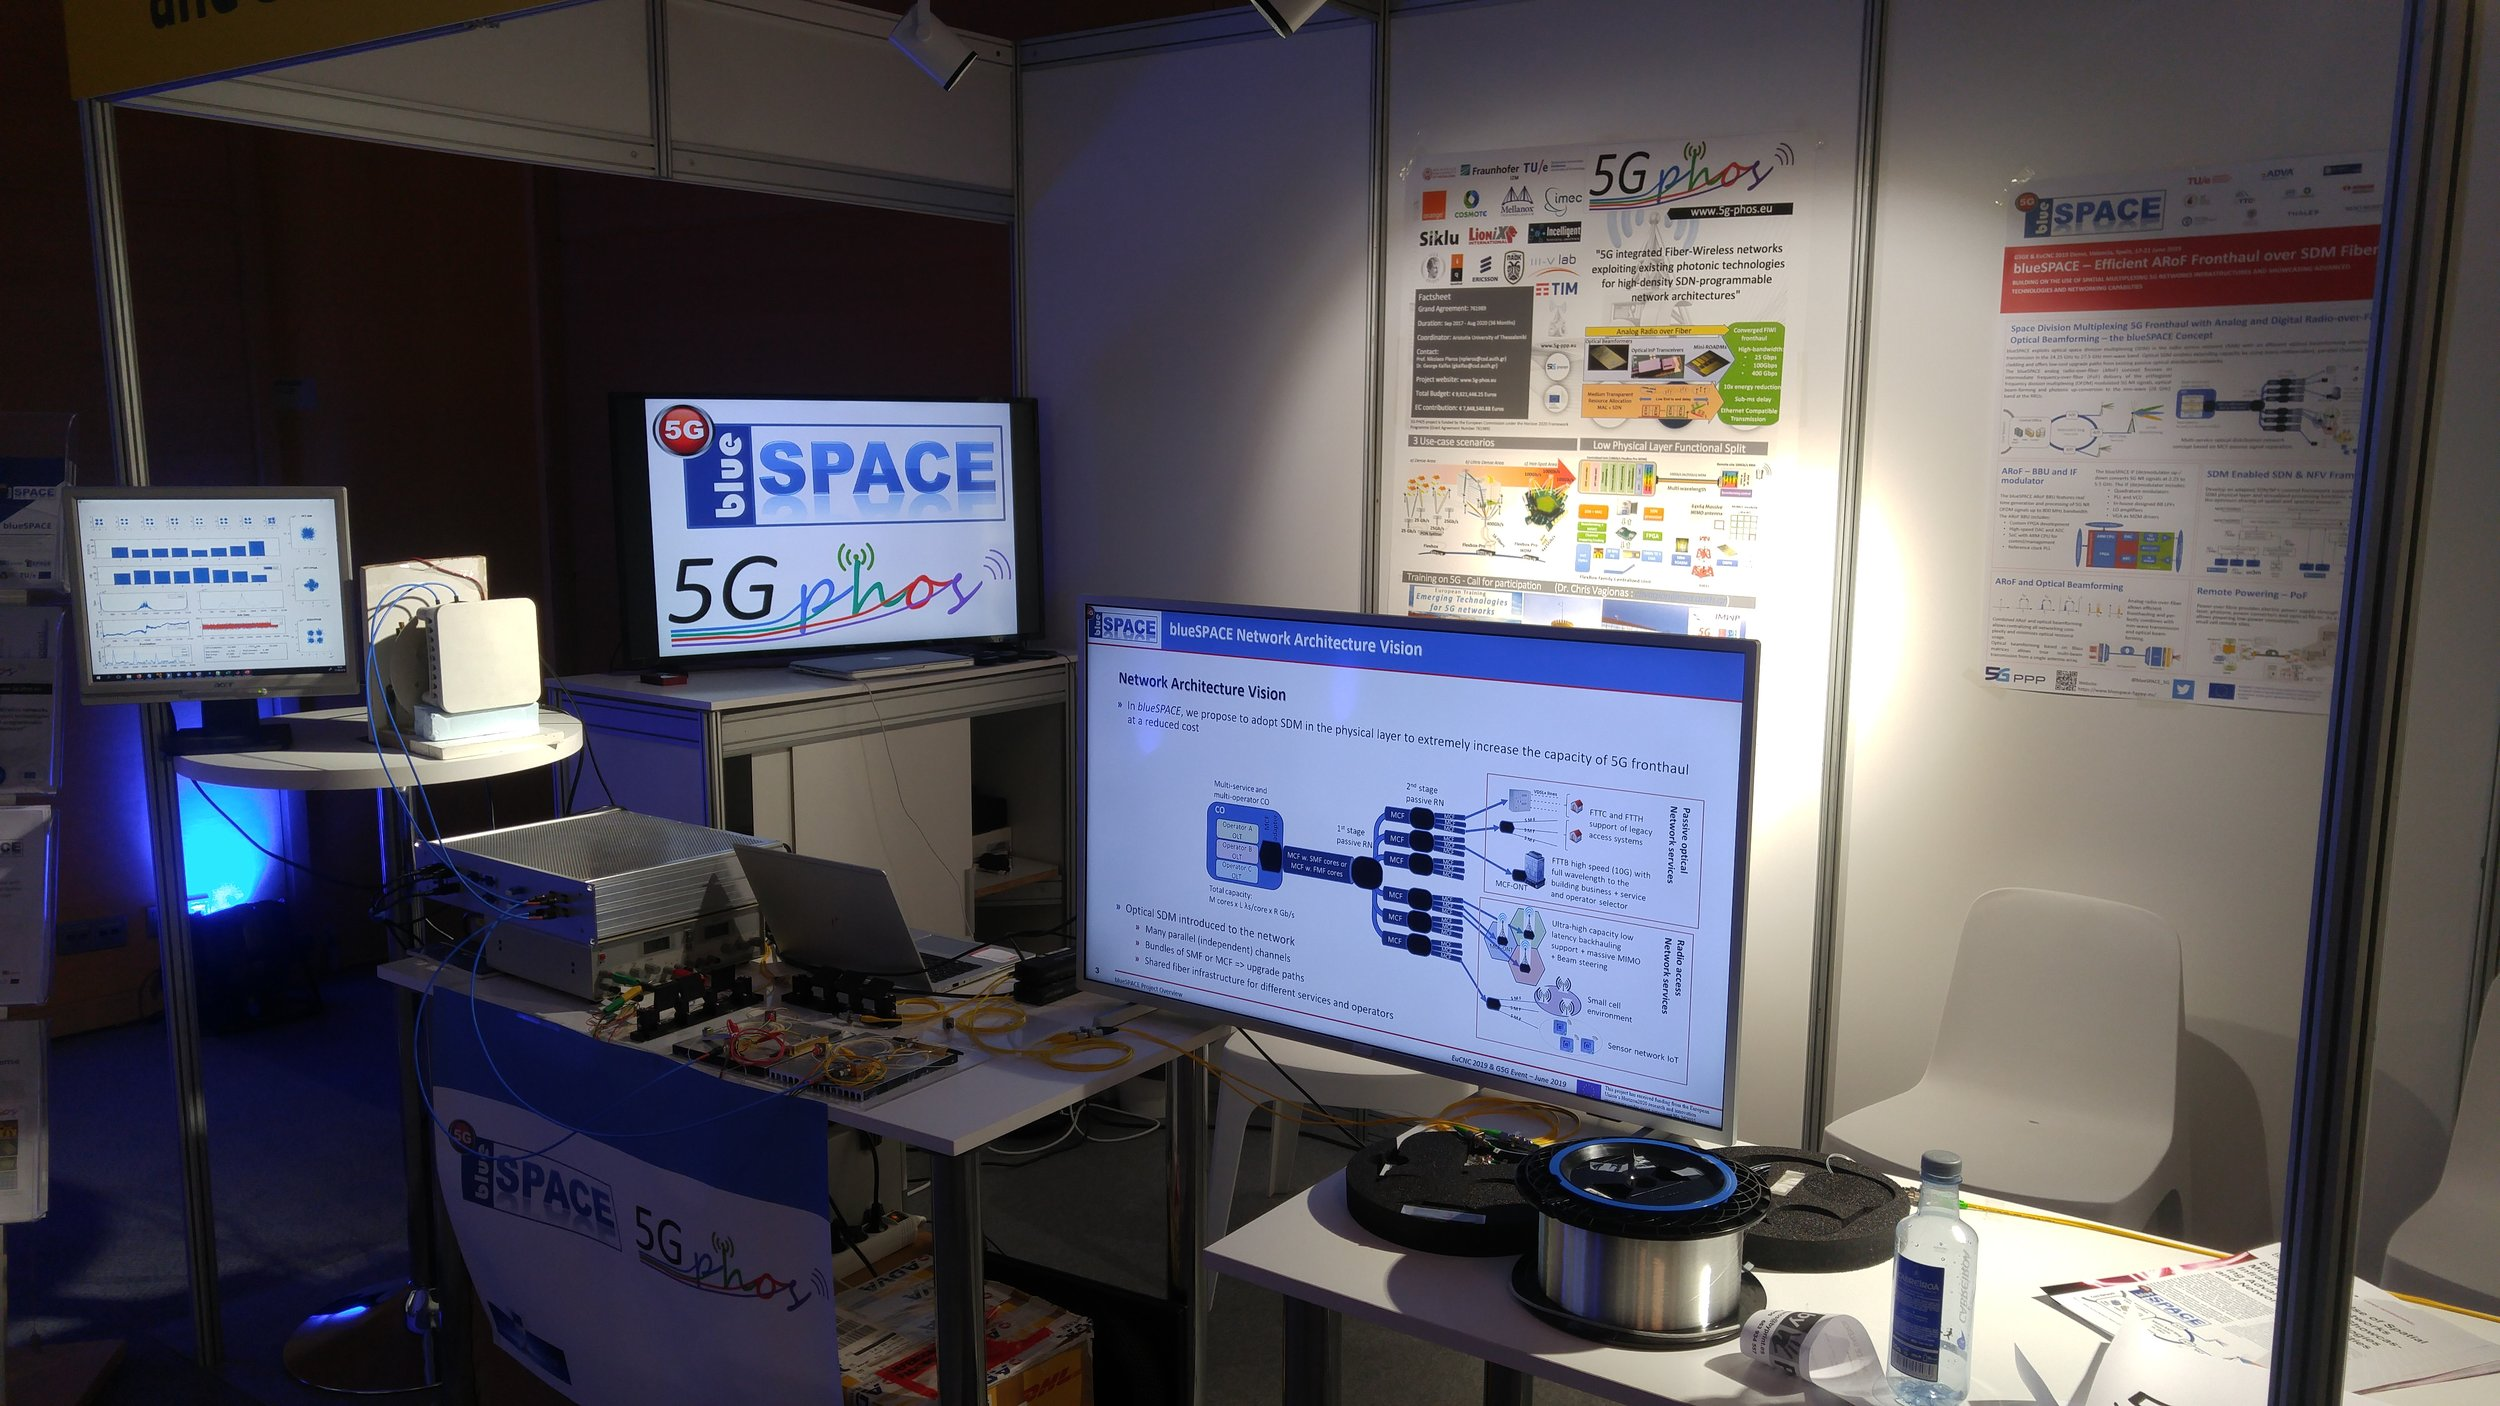 Demo booth setup at EuCNC2019 in Valencia.